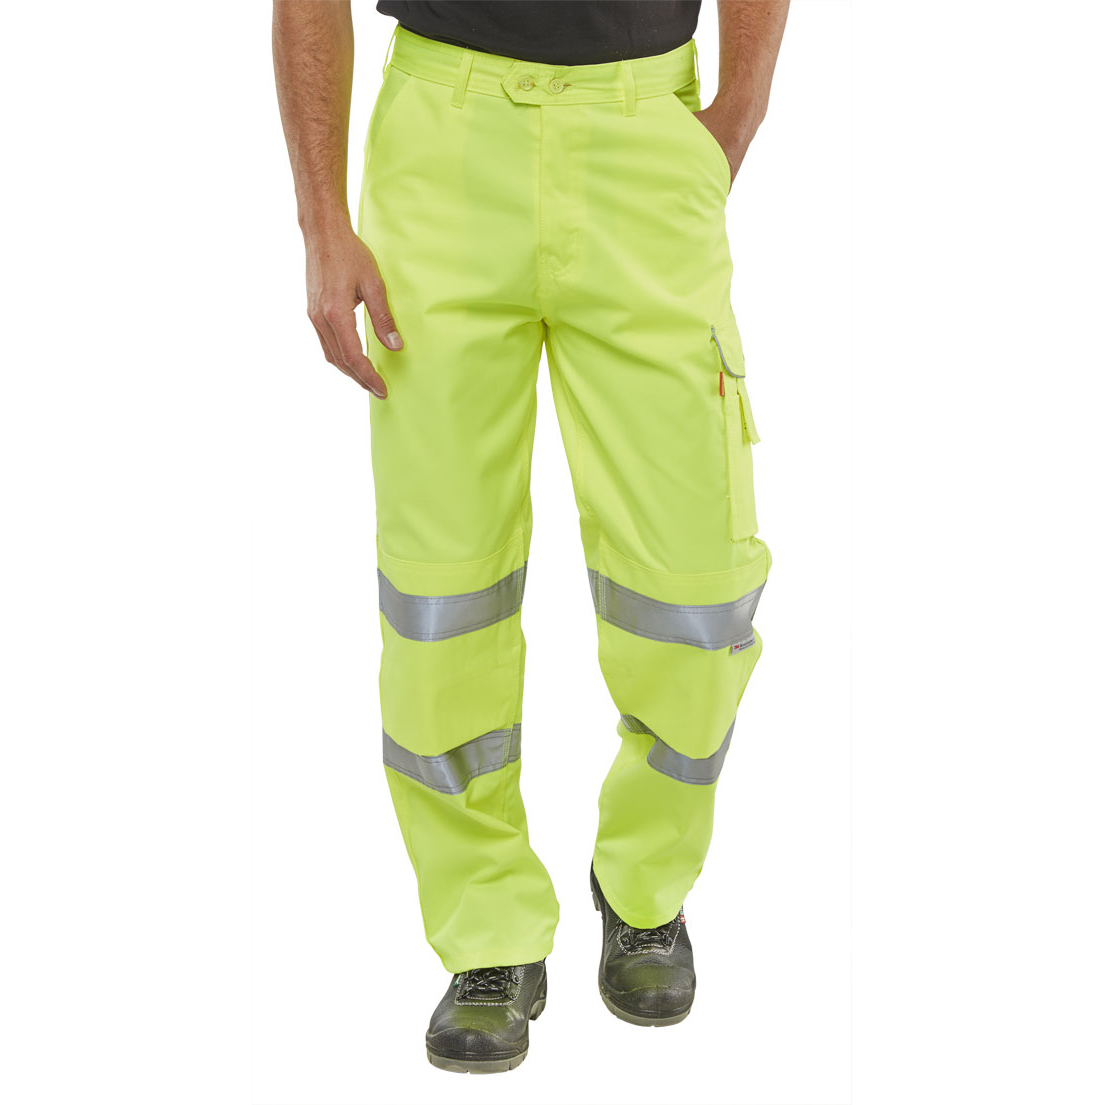 Ladies BSeen Trousers Polycotton Hi-Vis EN471 Saturn Yellow 40 Ref PCTENSY40 *Up to 3 Day Leadtime*